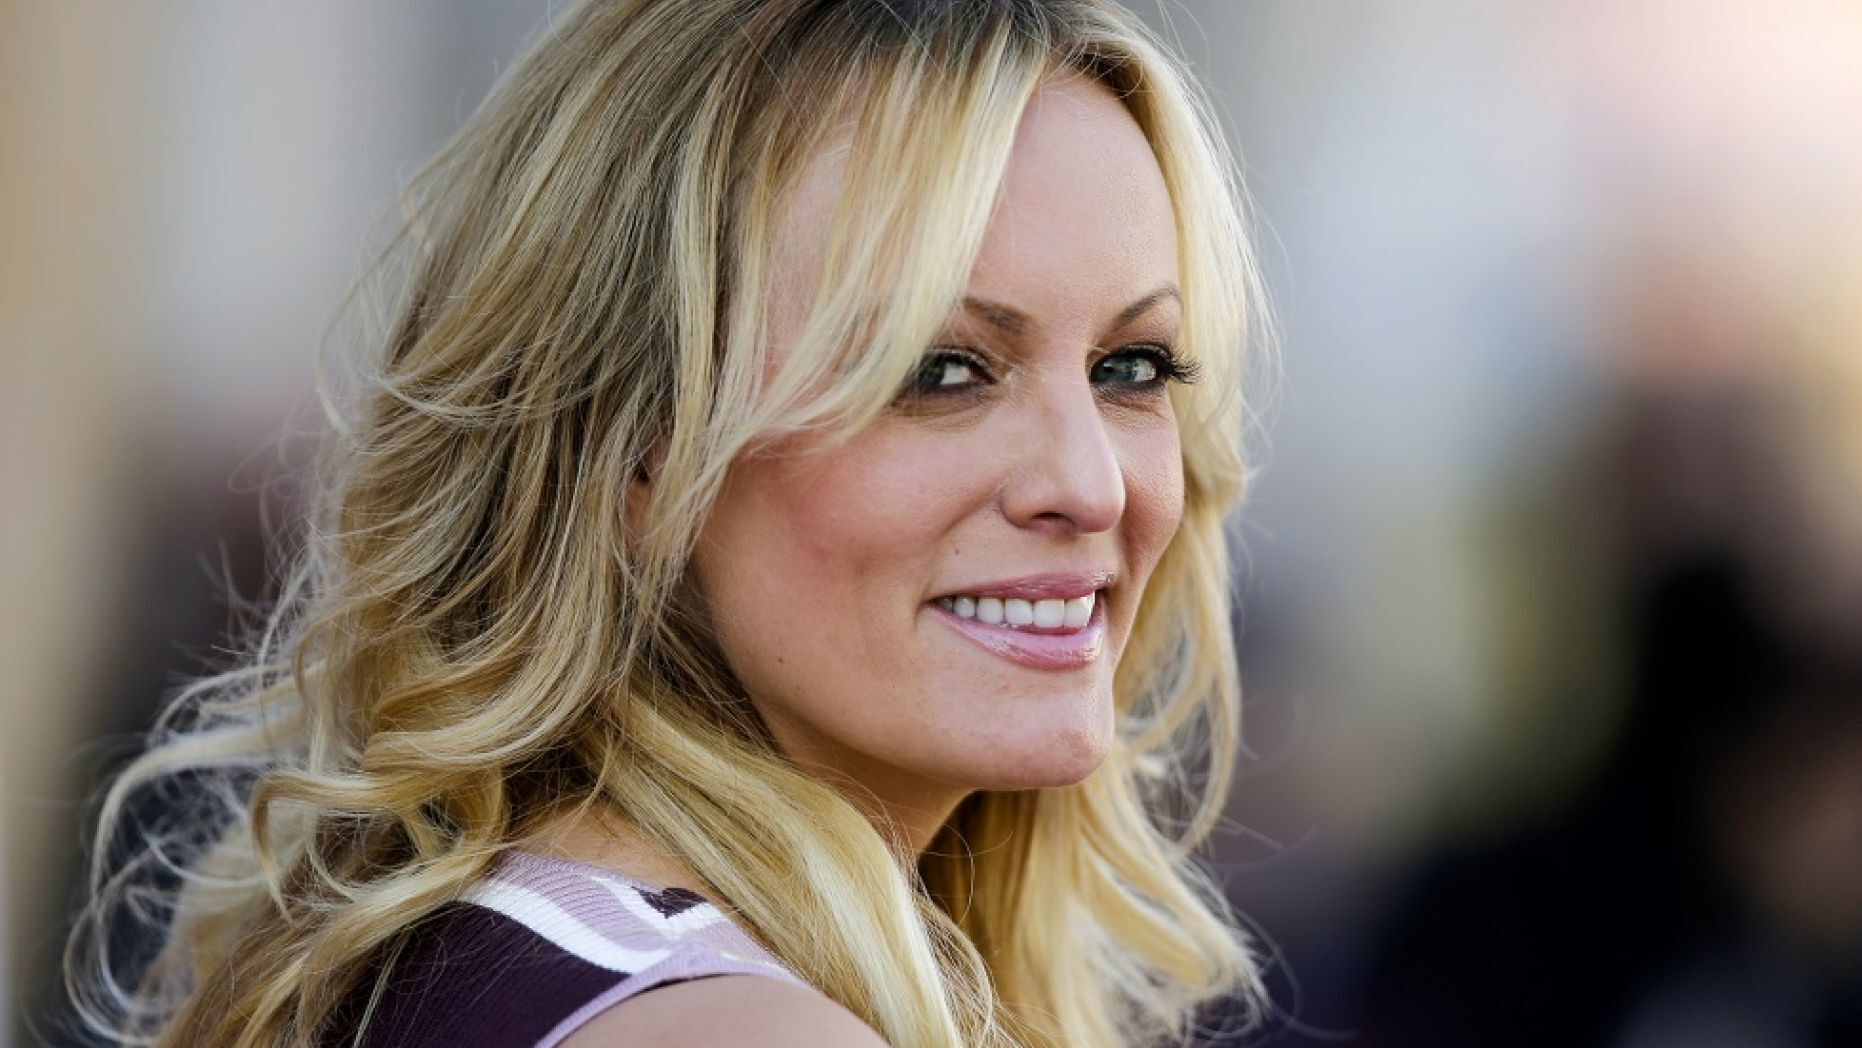 Adult film actress Stormy Daniels attends the opening of an adult entertainment fair in Berlin last year.